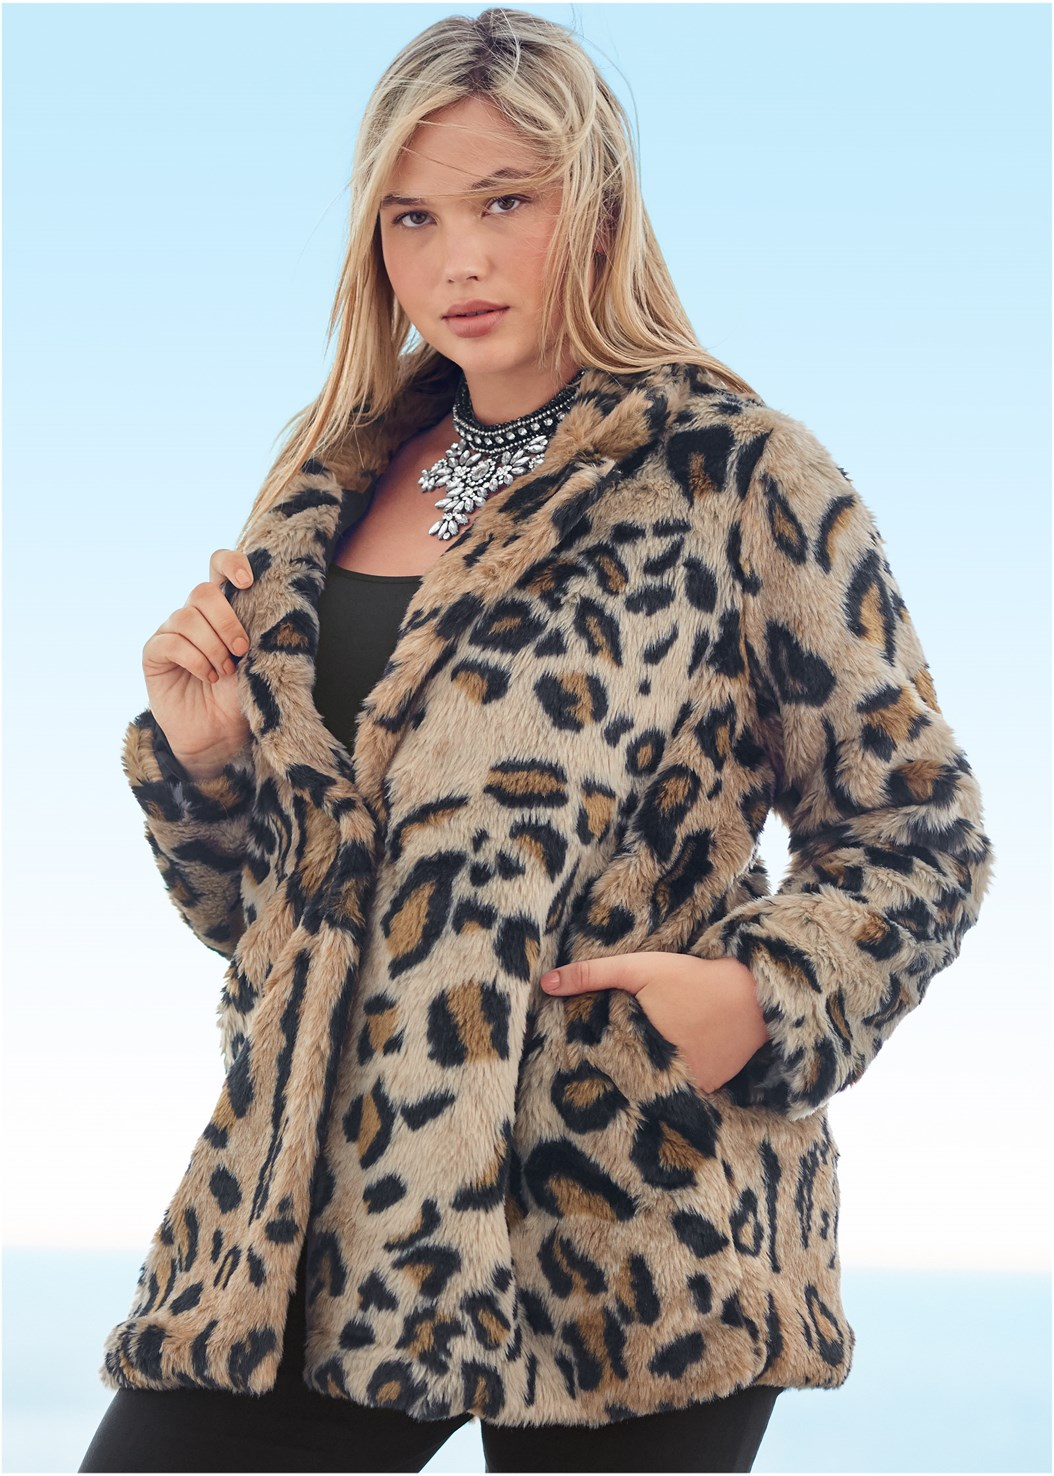 Faux Fur Leopard Print Coat,Basic Cami Two Pack,Mid Rise Slimming Stretch Jeggings